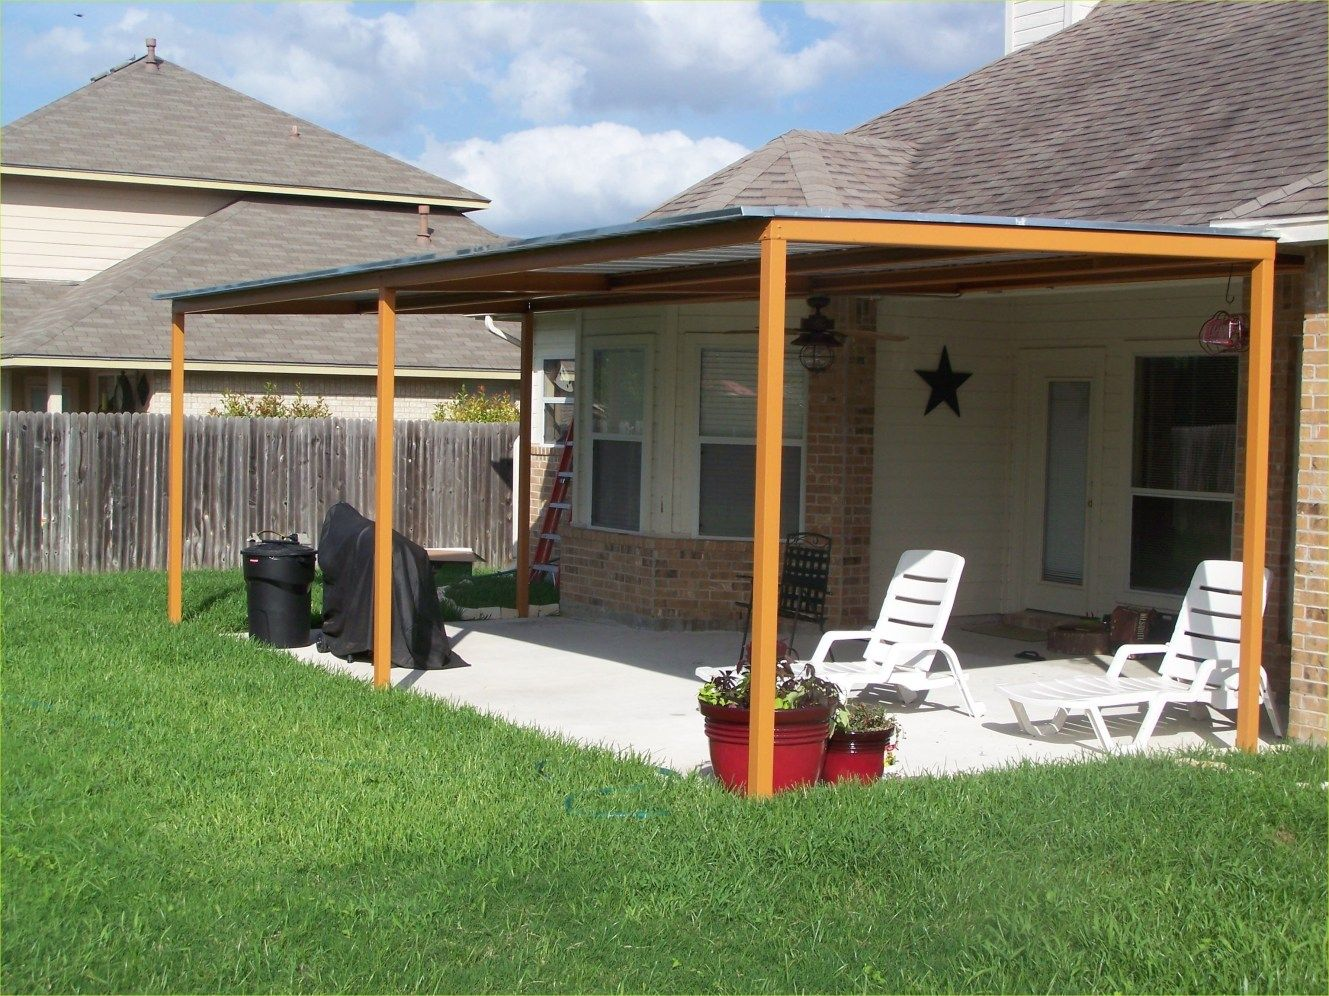 40 Cozy Relaxing Detached Patio Roof Ideas Have Fun Decor In 2020 Diy Patio Cover Aluminum Patio Awnings Inexpensive Patio Shade Ideas